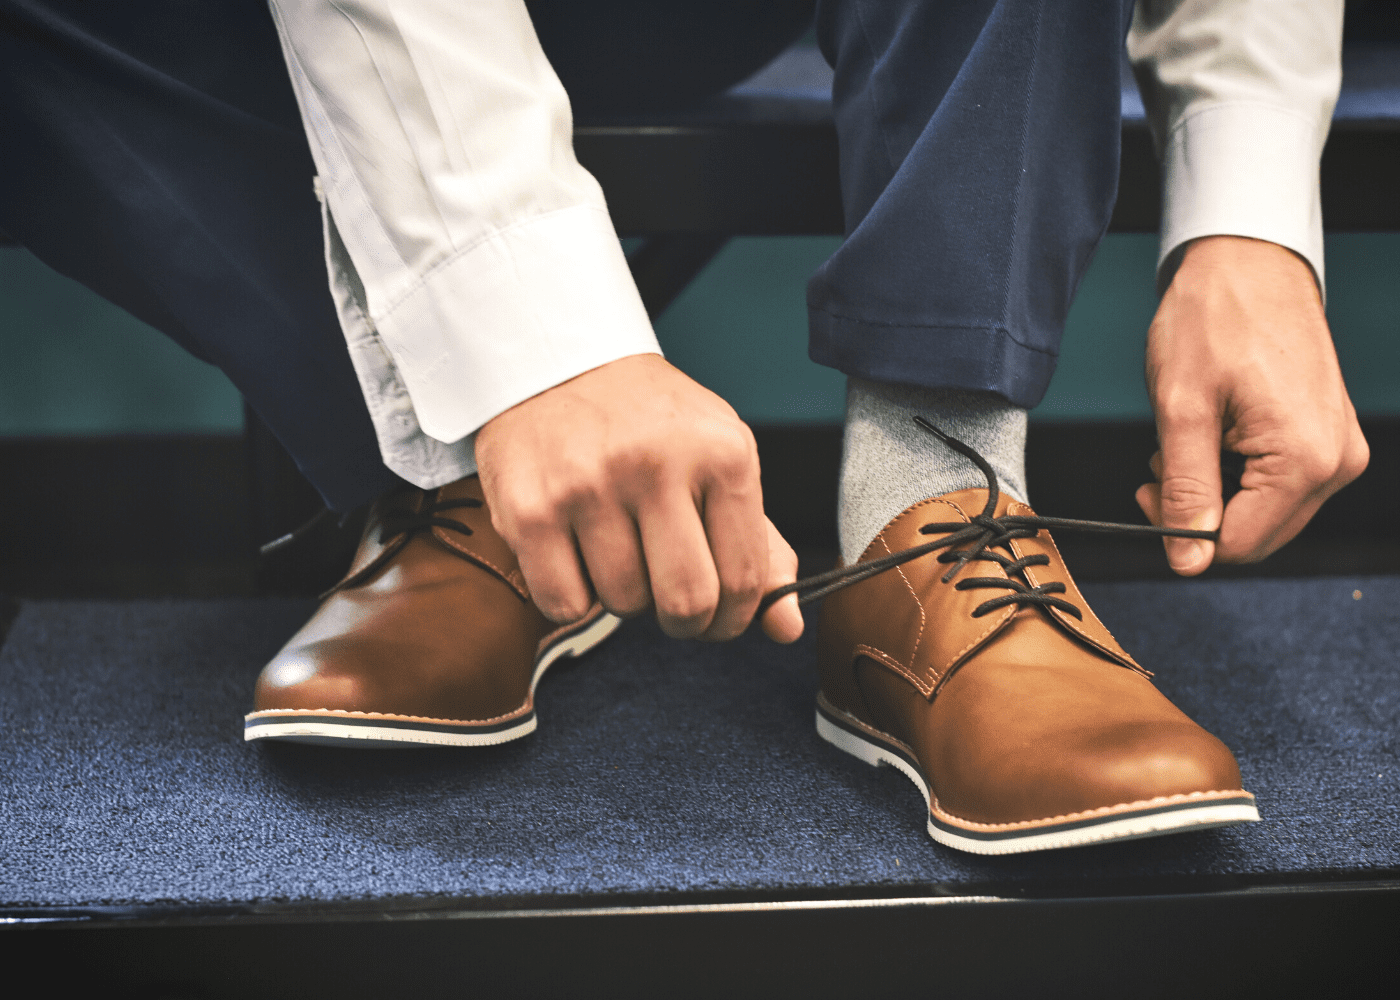 Men's dress shoes: Oxfords, loafers and wingtips for dapper dressers